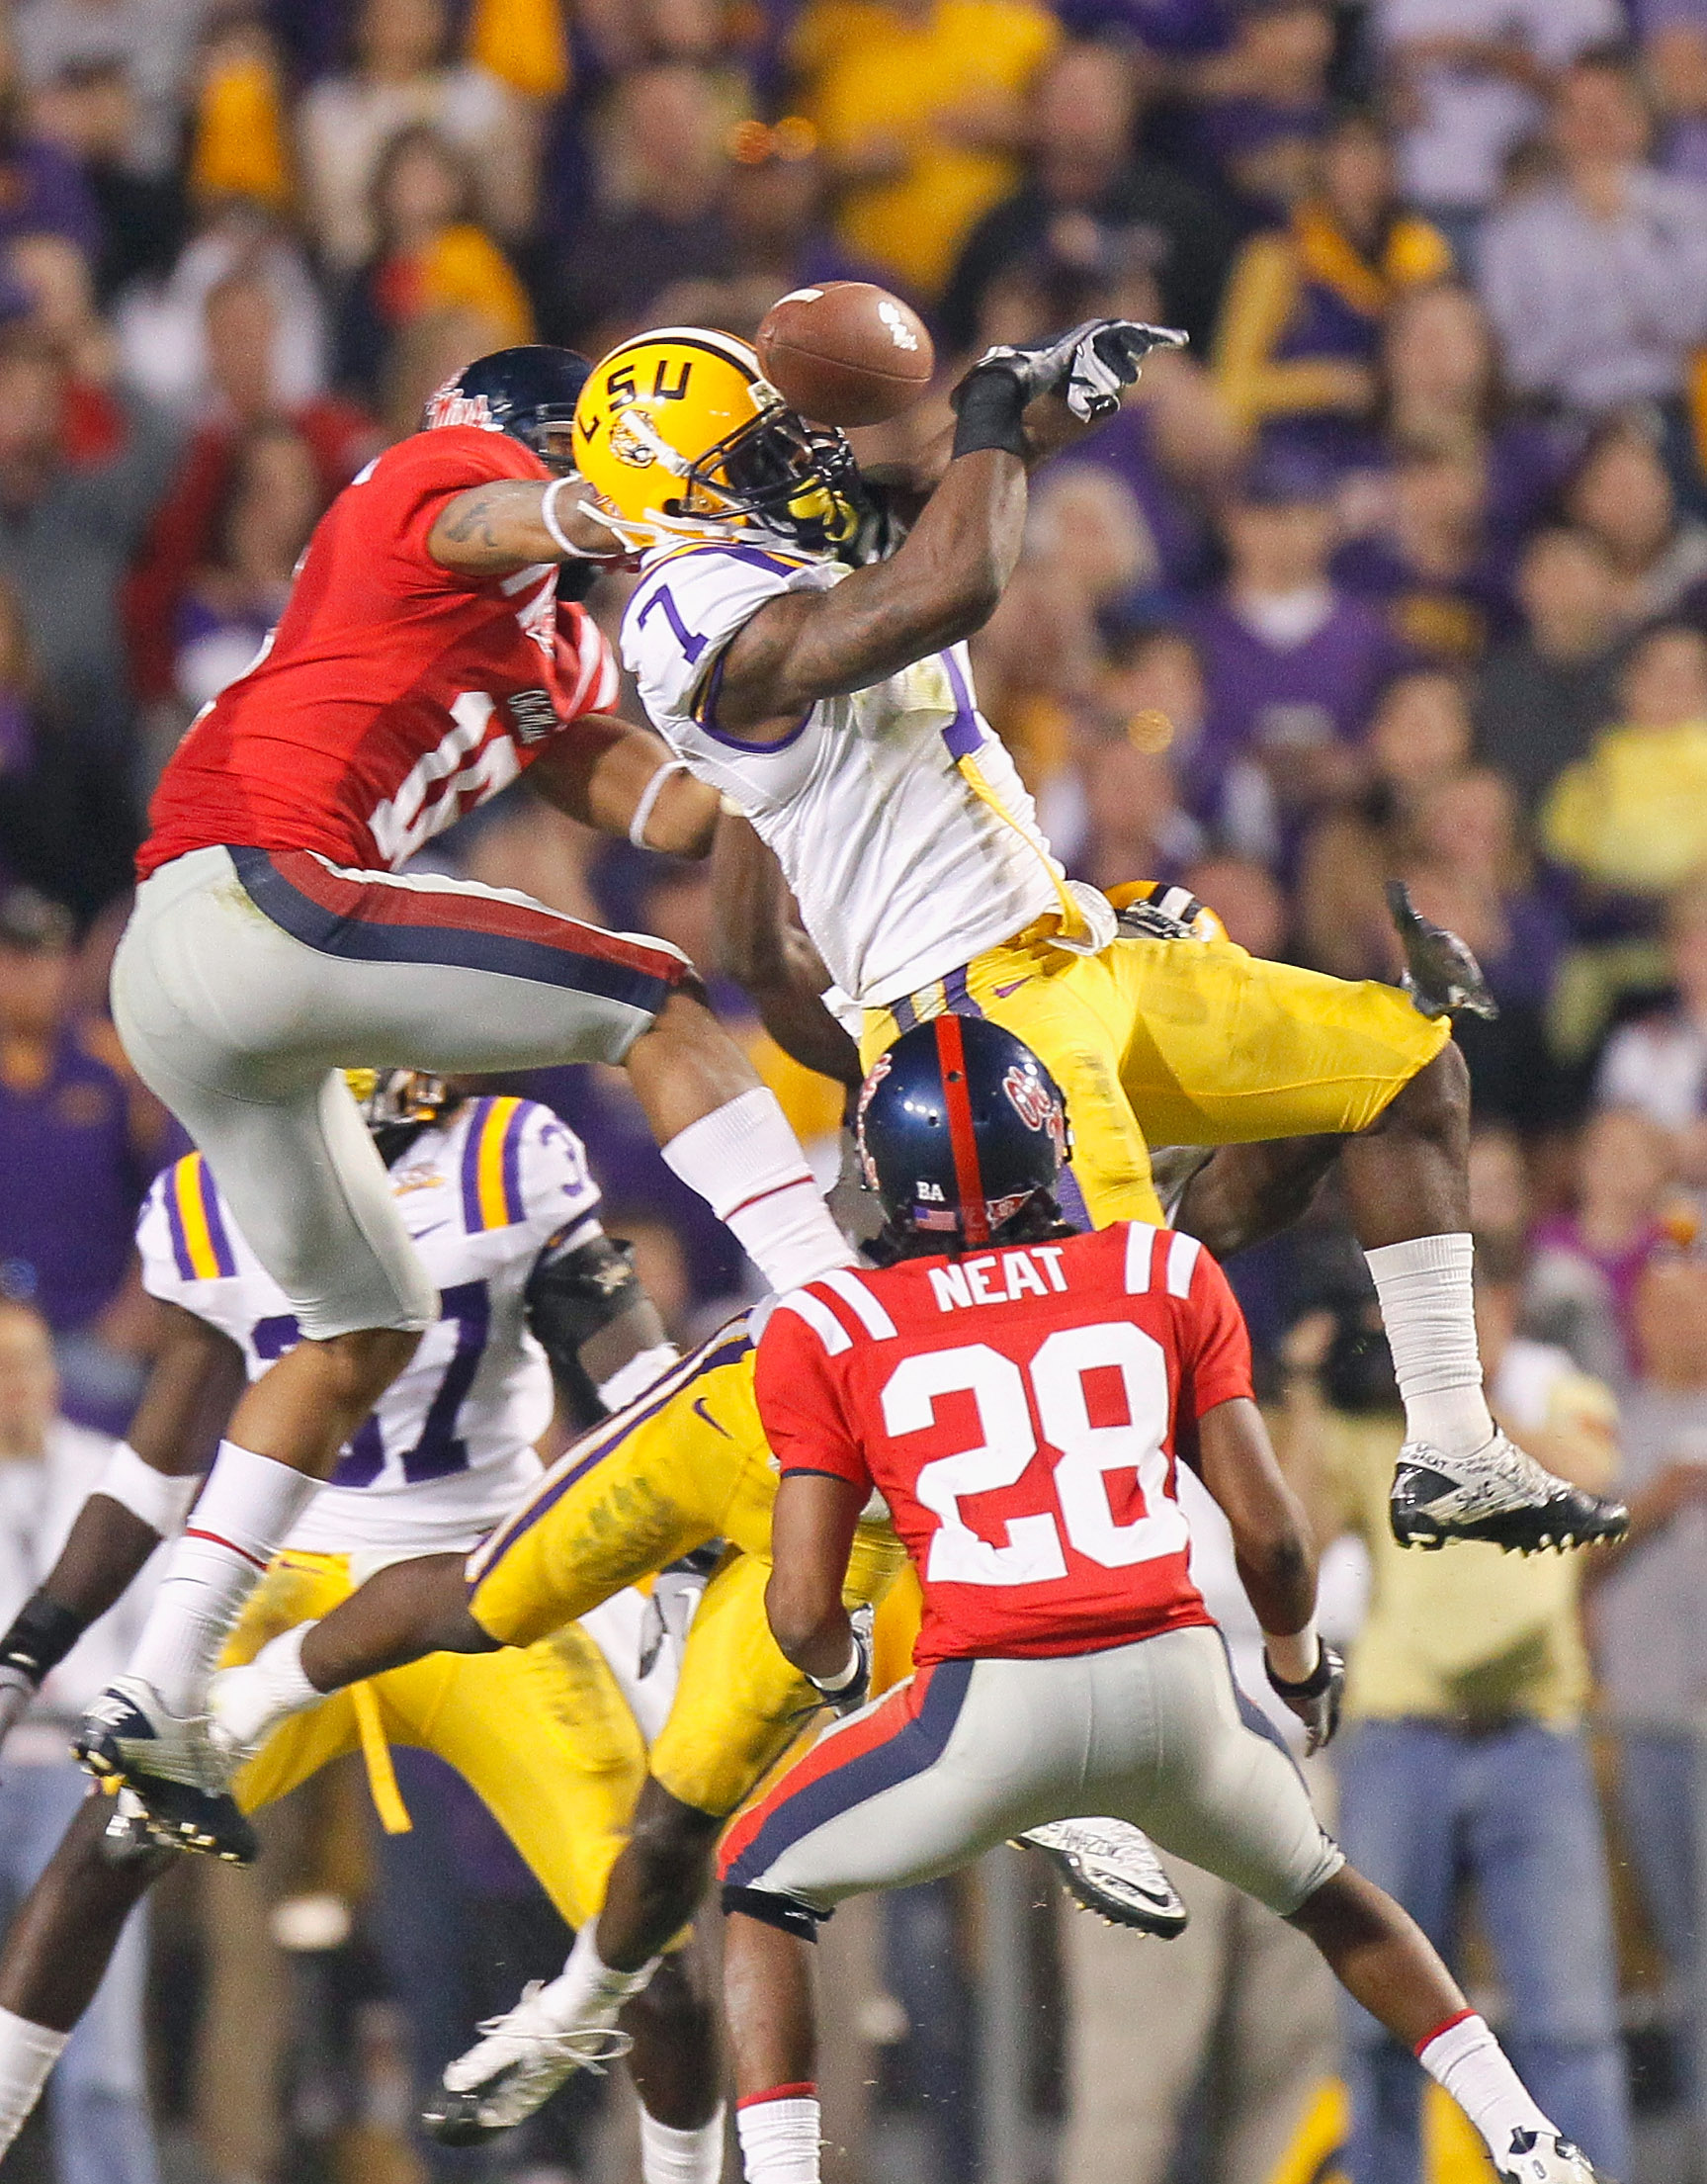 BATON ROUGE, LA - NOVEMBER 20:  Patrick Peterson #7 of the Louisiana State University Tigers nearly intercepts a pass in the final seconds against Markeith Summers #16 and Korvic Neat #28 of the Ole Miss Rebels as time expired at Tiger Stadium on November